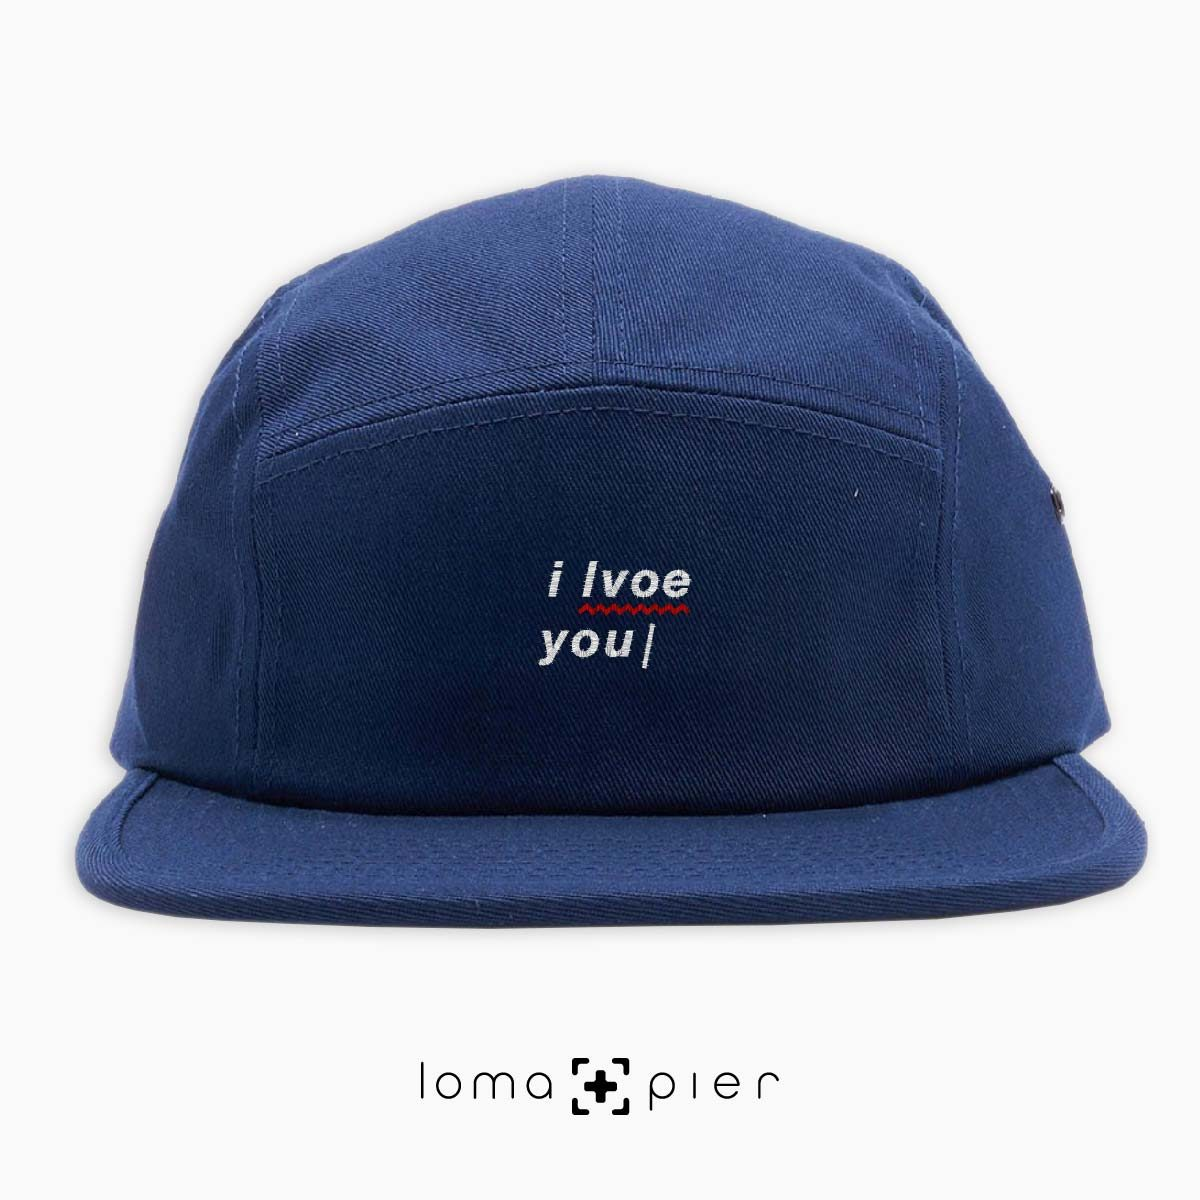 I LVOE YOU typography embroidered on a navy blue cotton 5-panel hat with white thread by loma+pier hat store